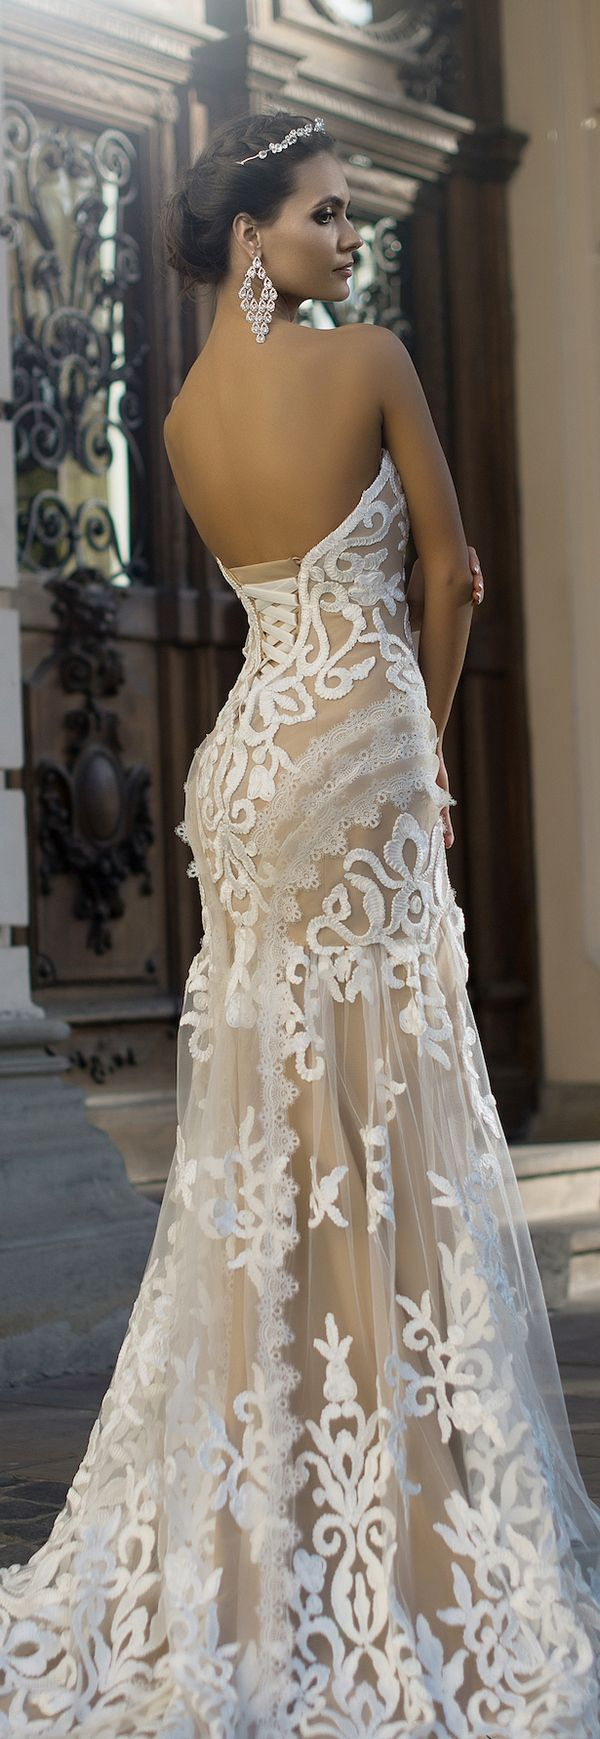 Traditional filipino wedding dress  Pin by Anthony on Wedding Dresses and Architecture  Pinterest